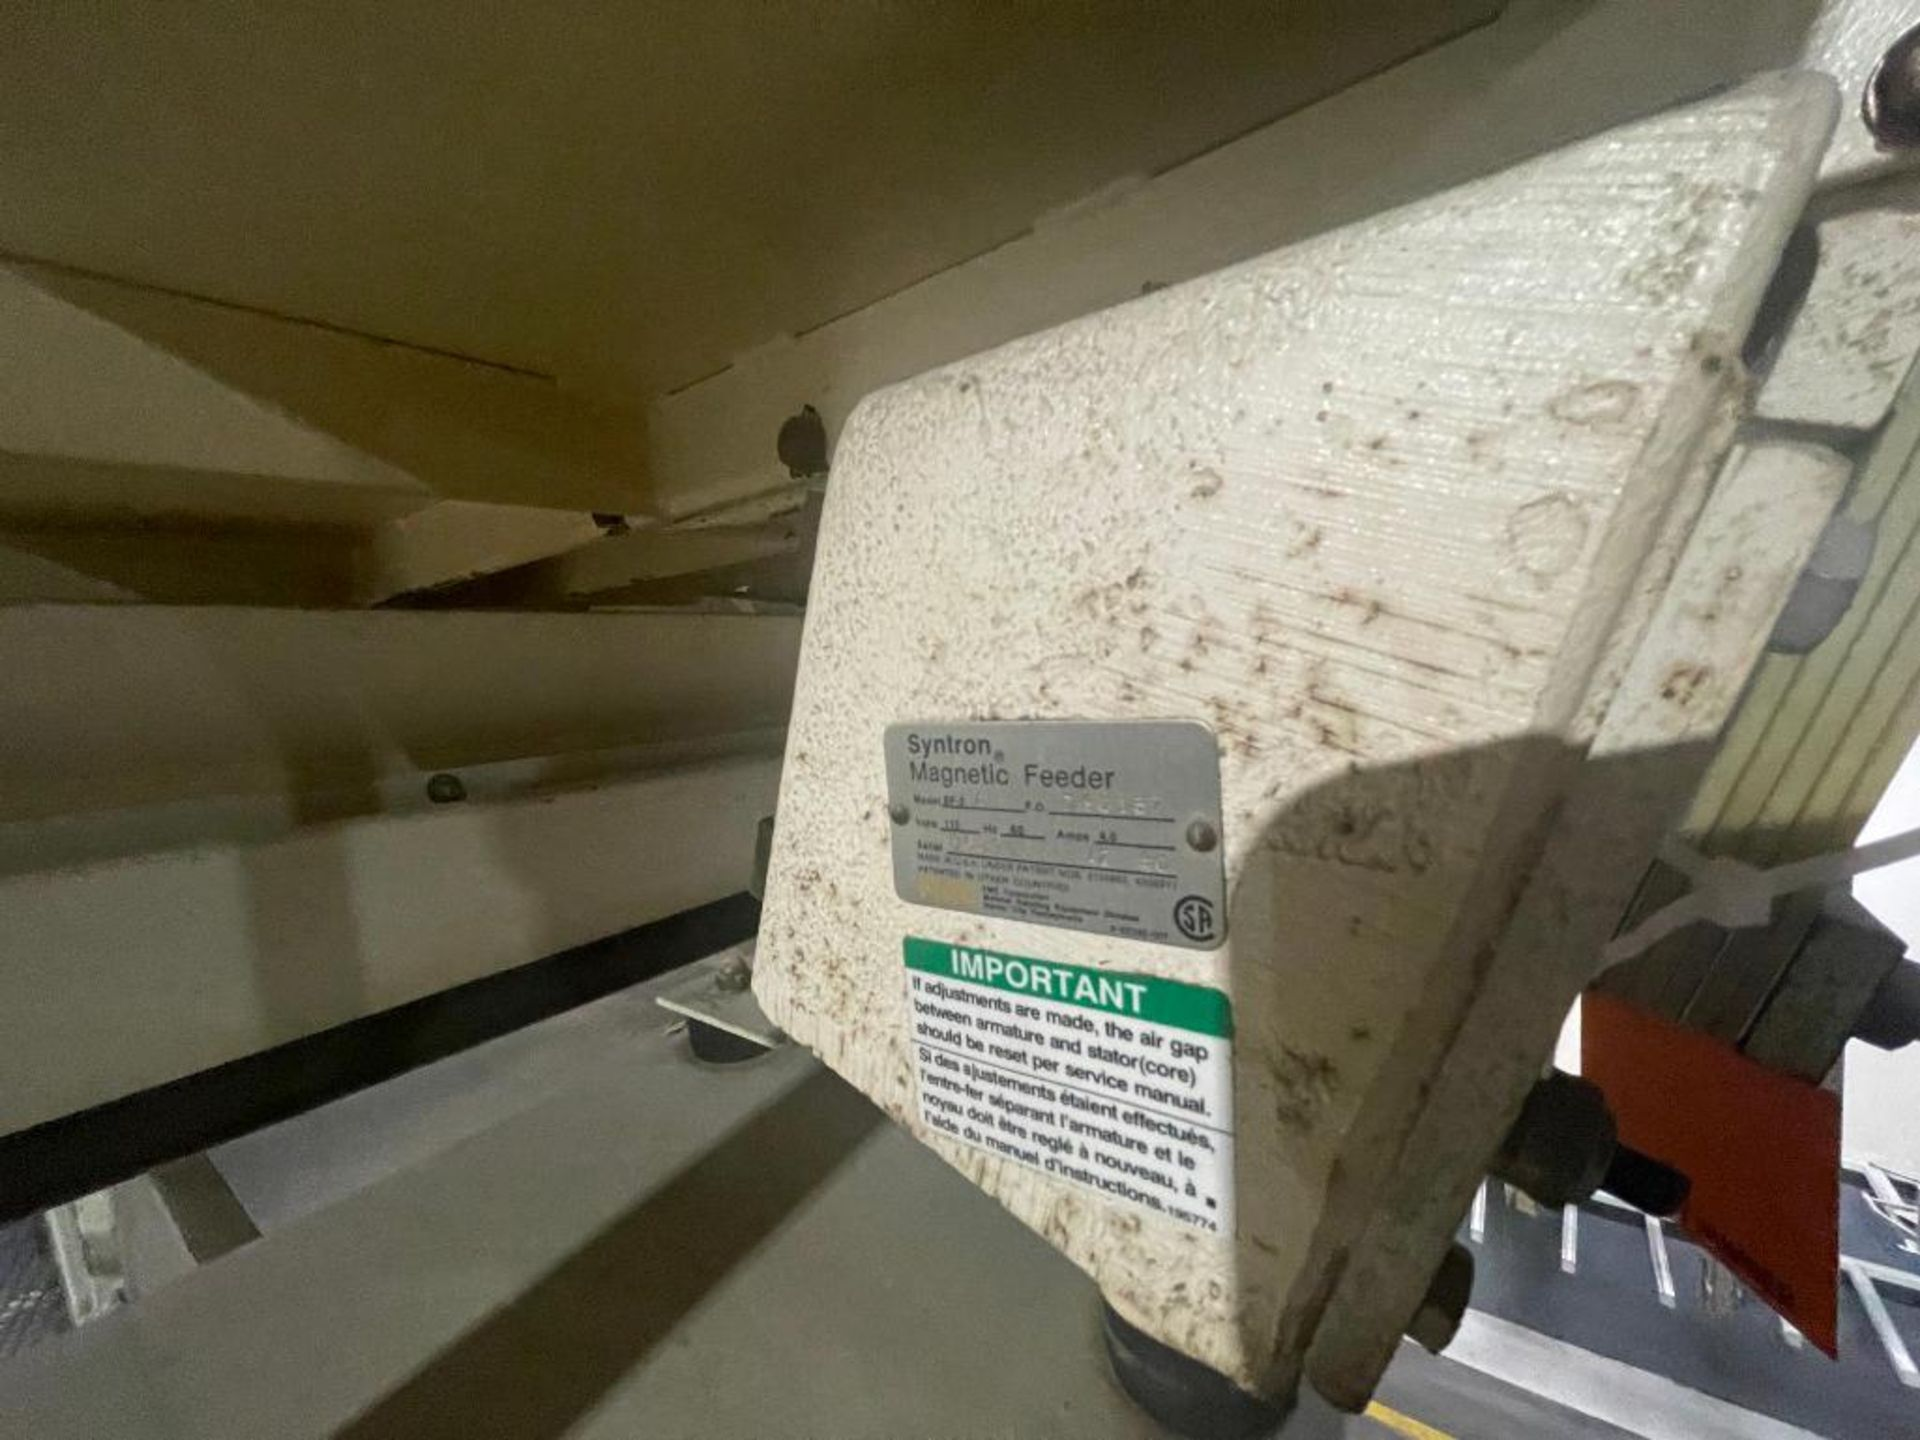 Aseeco 5-bin blending system with 5 Syntron vibratory feeders on bottom - Image 10 of 12